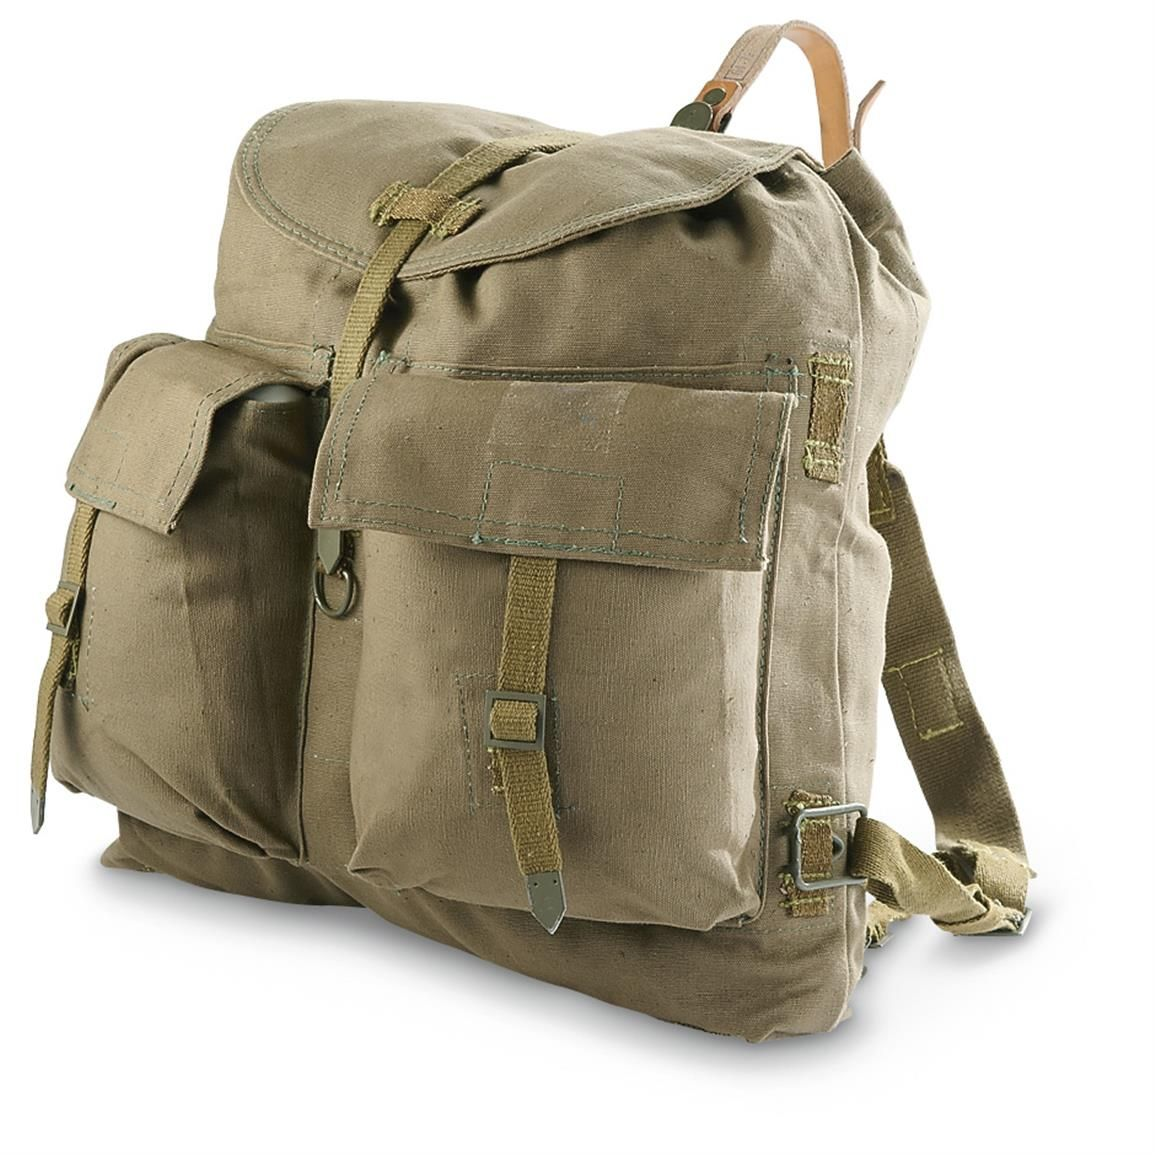 93f1e90efc70 3 Used Czech Military Surplus Rucksacks